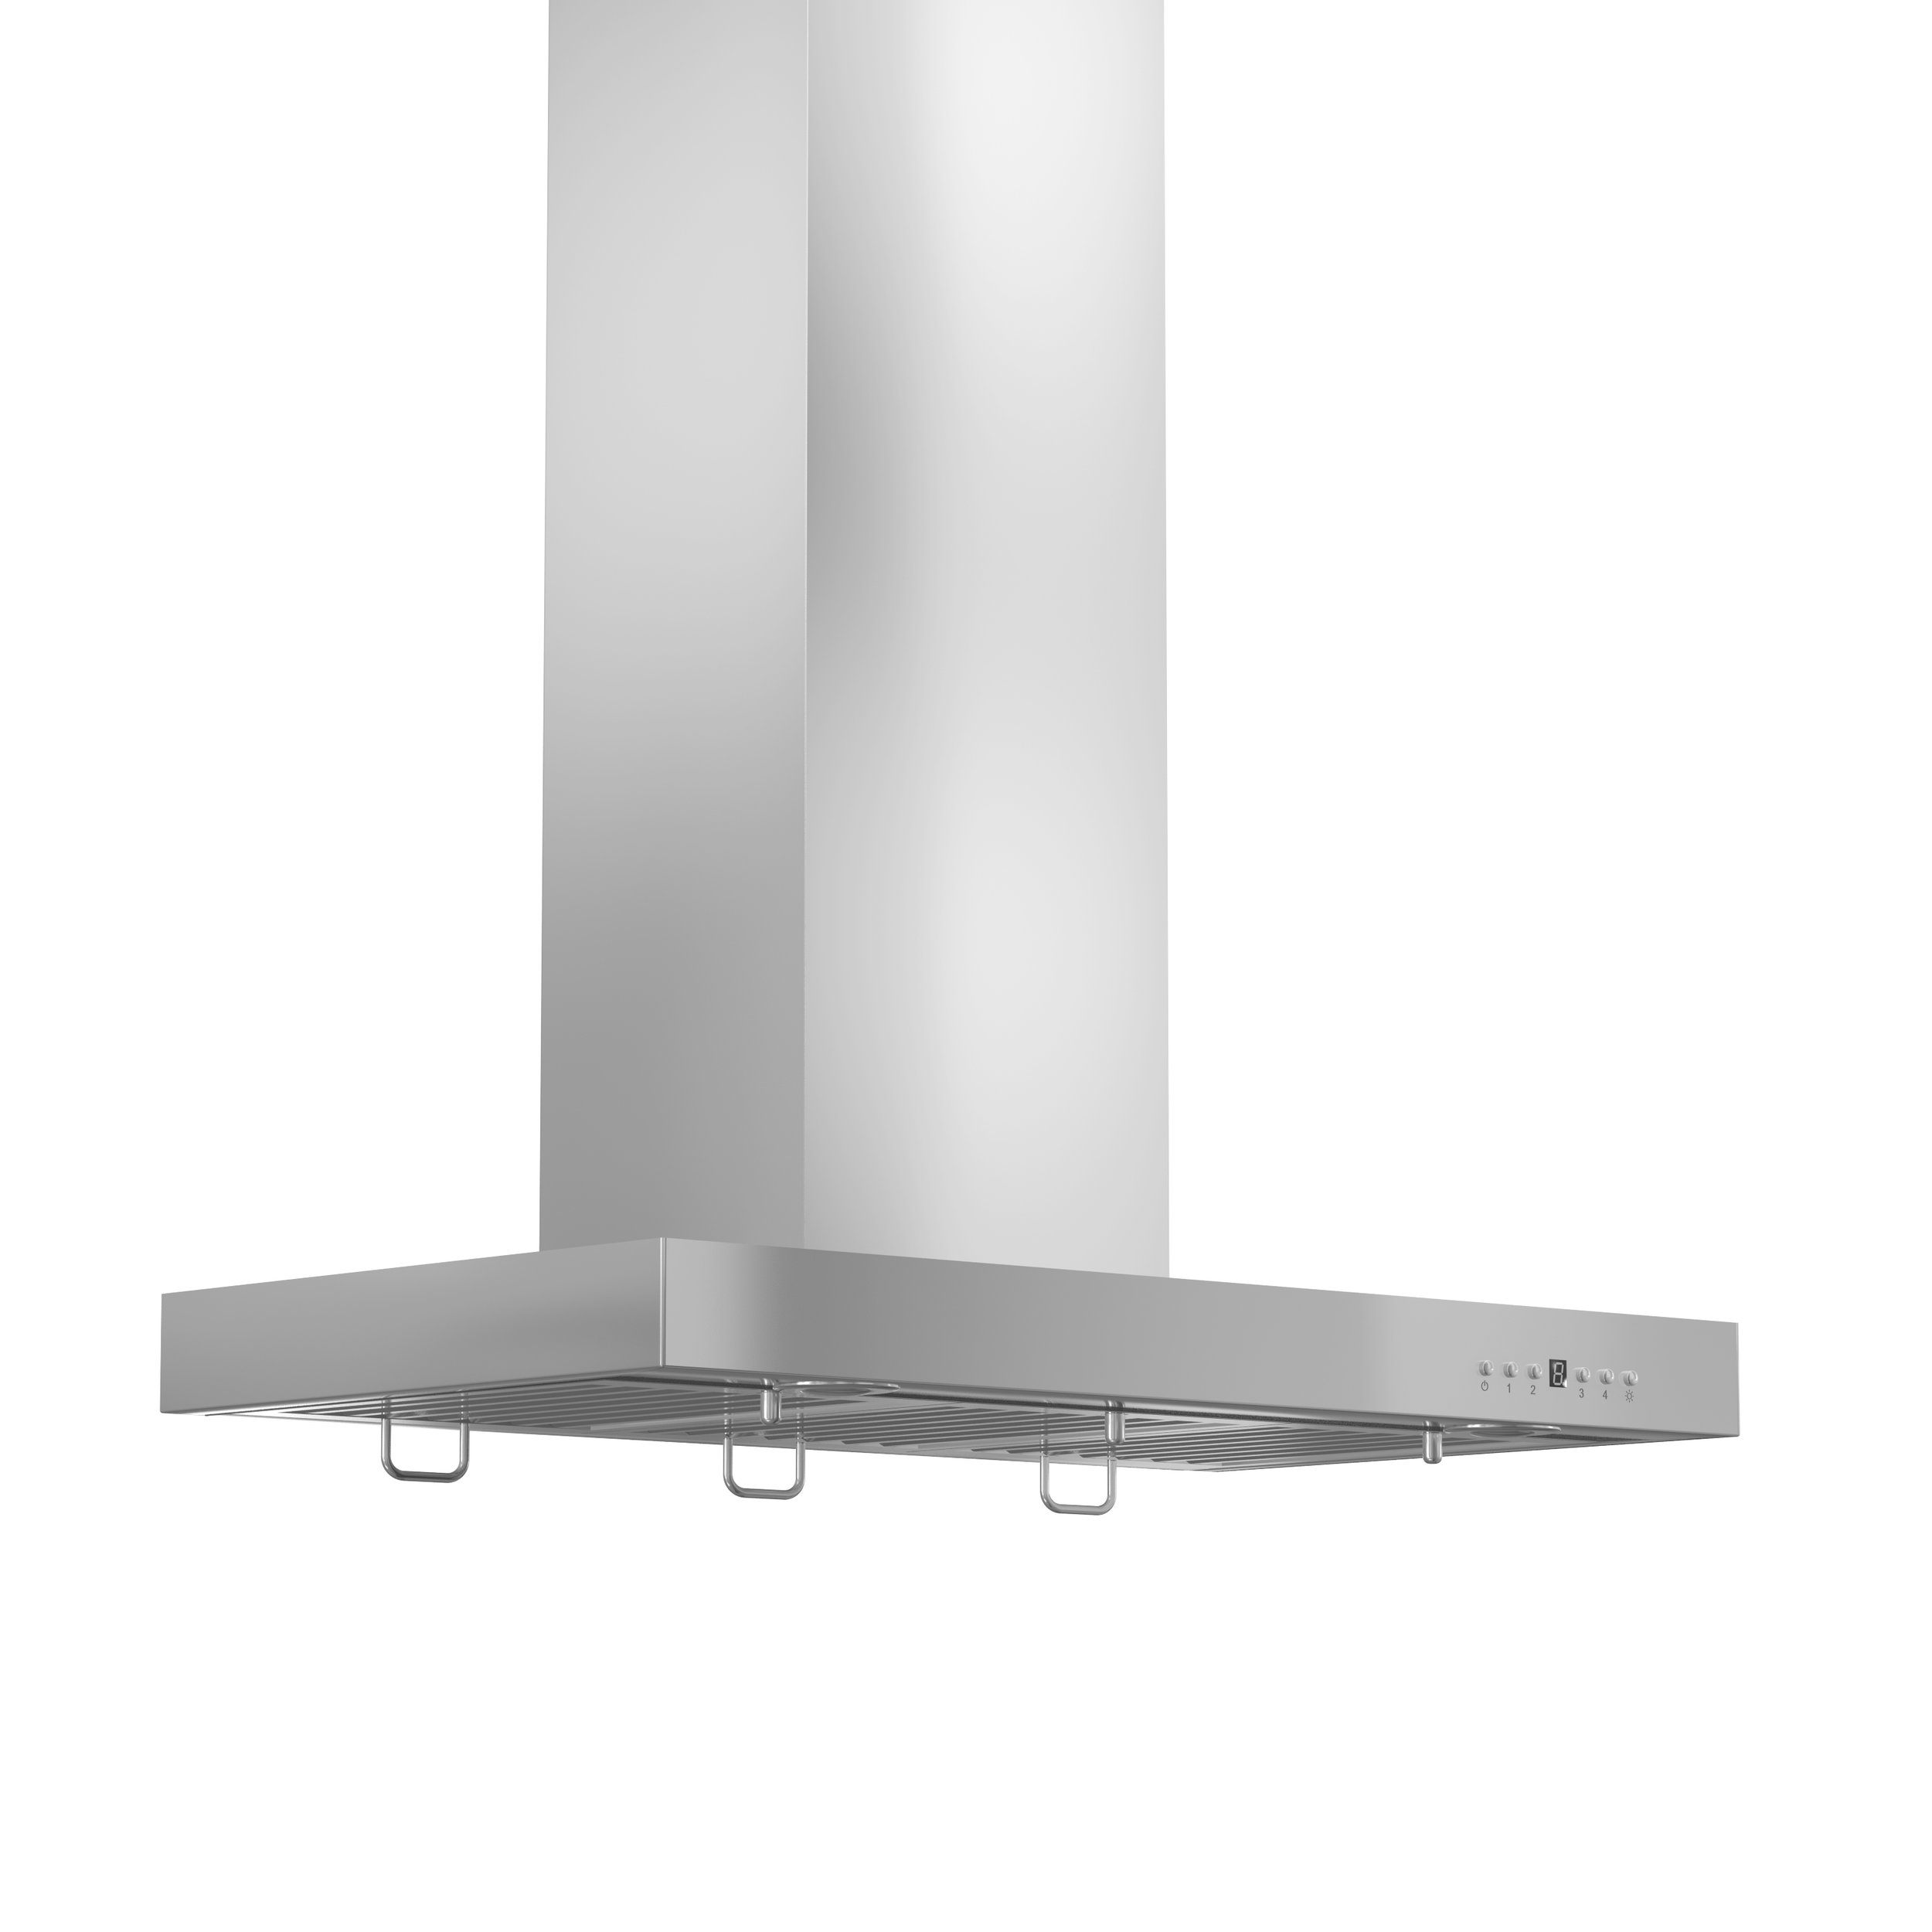 Ductless Stainless KE